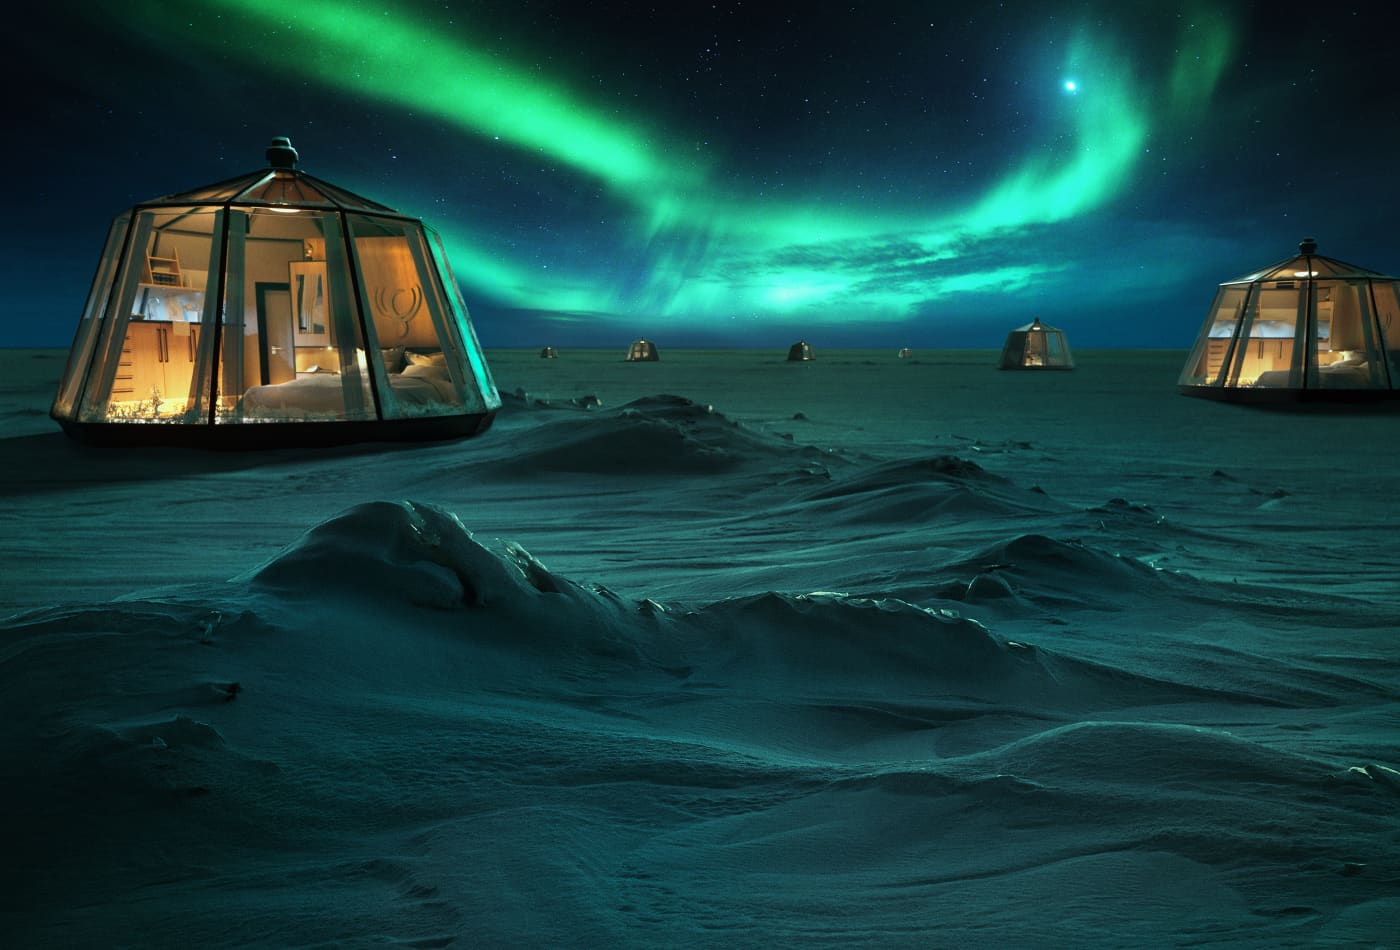 A new pop-up hotel in the North Pole will charge guests $100,000 to stay — take a look inside